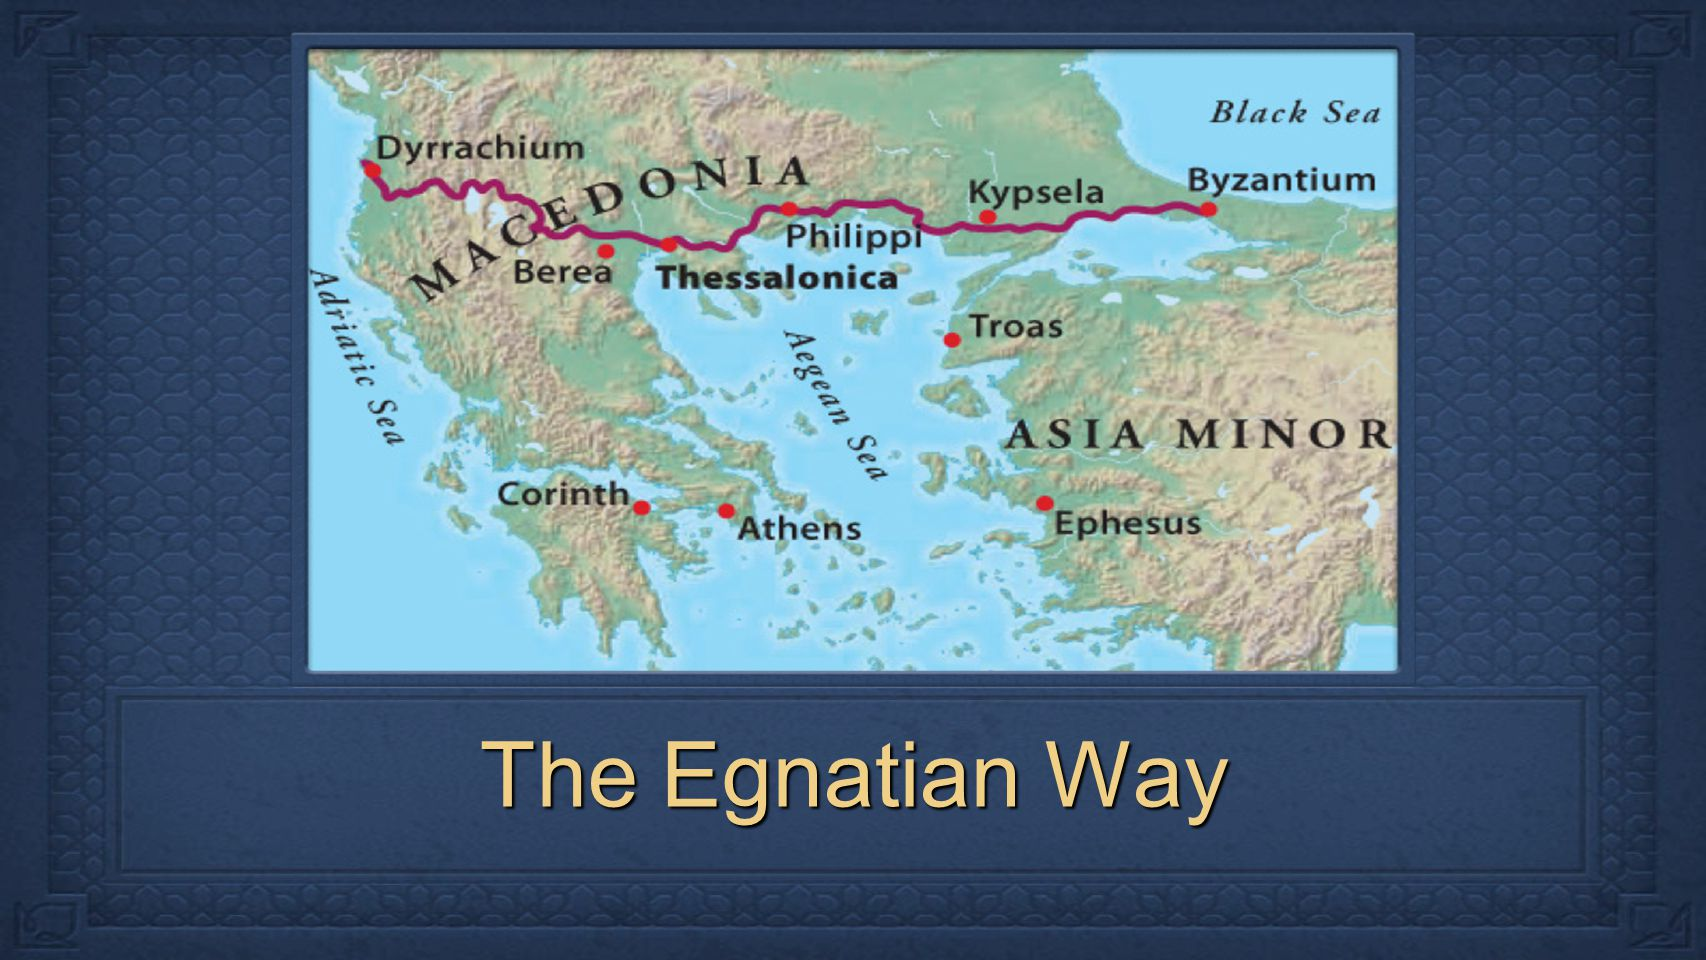 The Egnatian Way